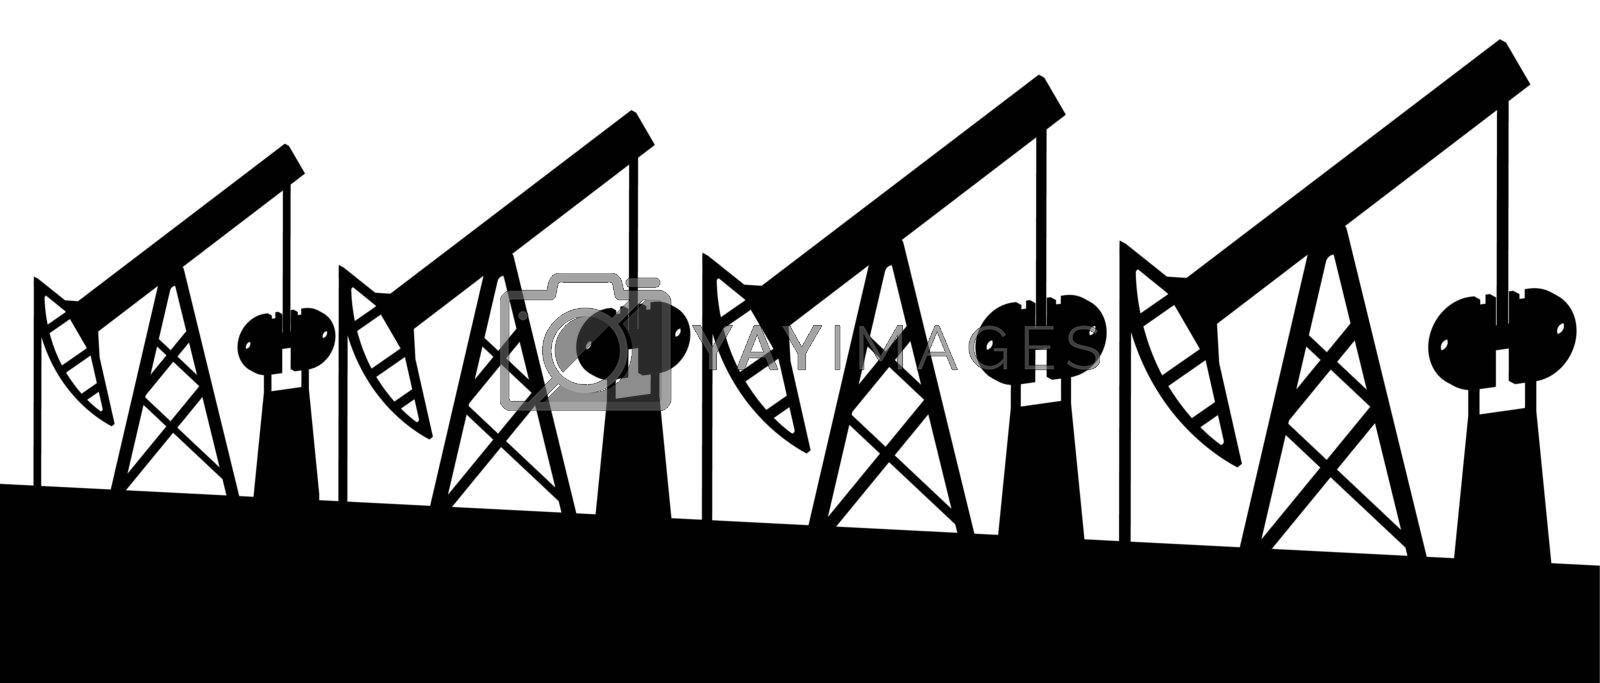 illustration, oil rigs black on white, energy security